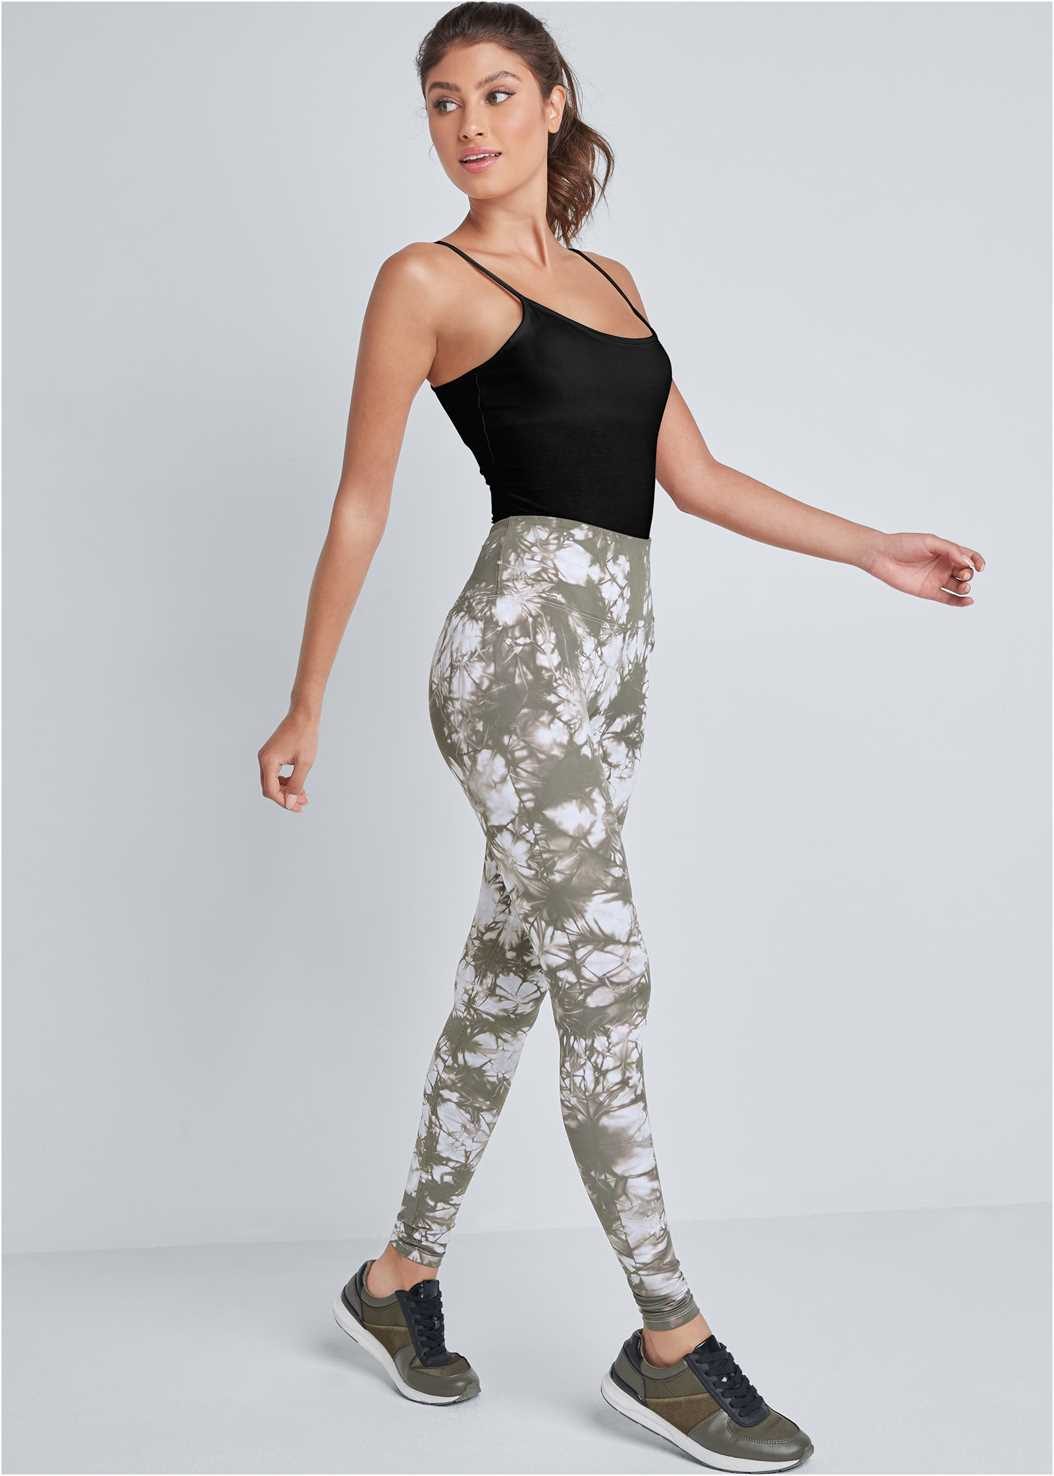 High Waisted Active Legging,Basic Cami Two Pack,Seamless Bralette